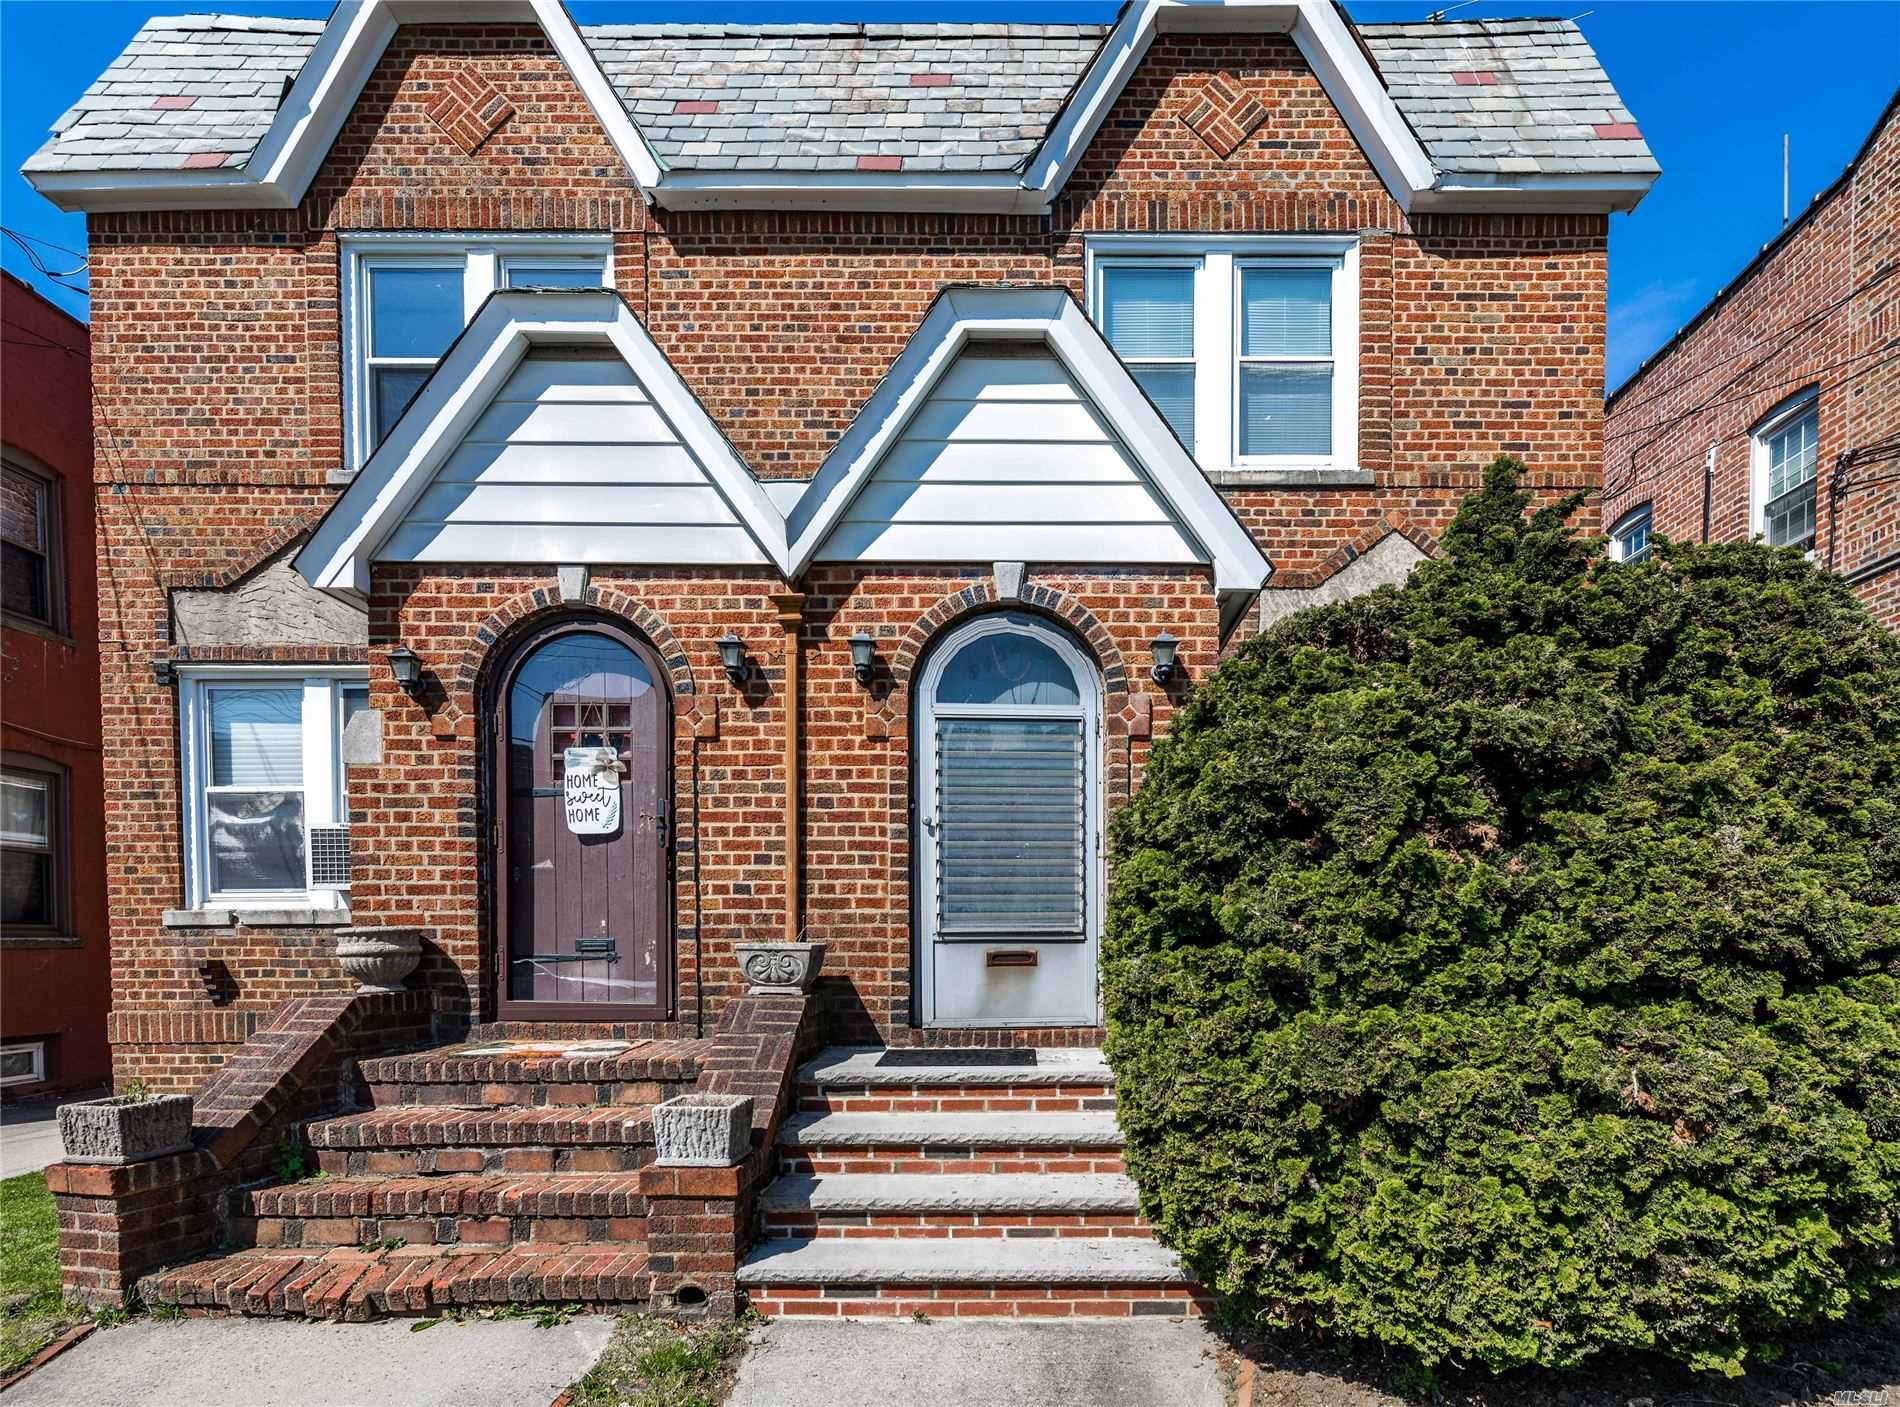 Property for sale at 9452 239 St, Floral Park NY 11001, Floral Park,  New York 11001